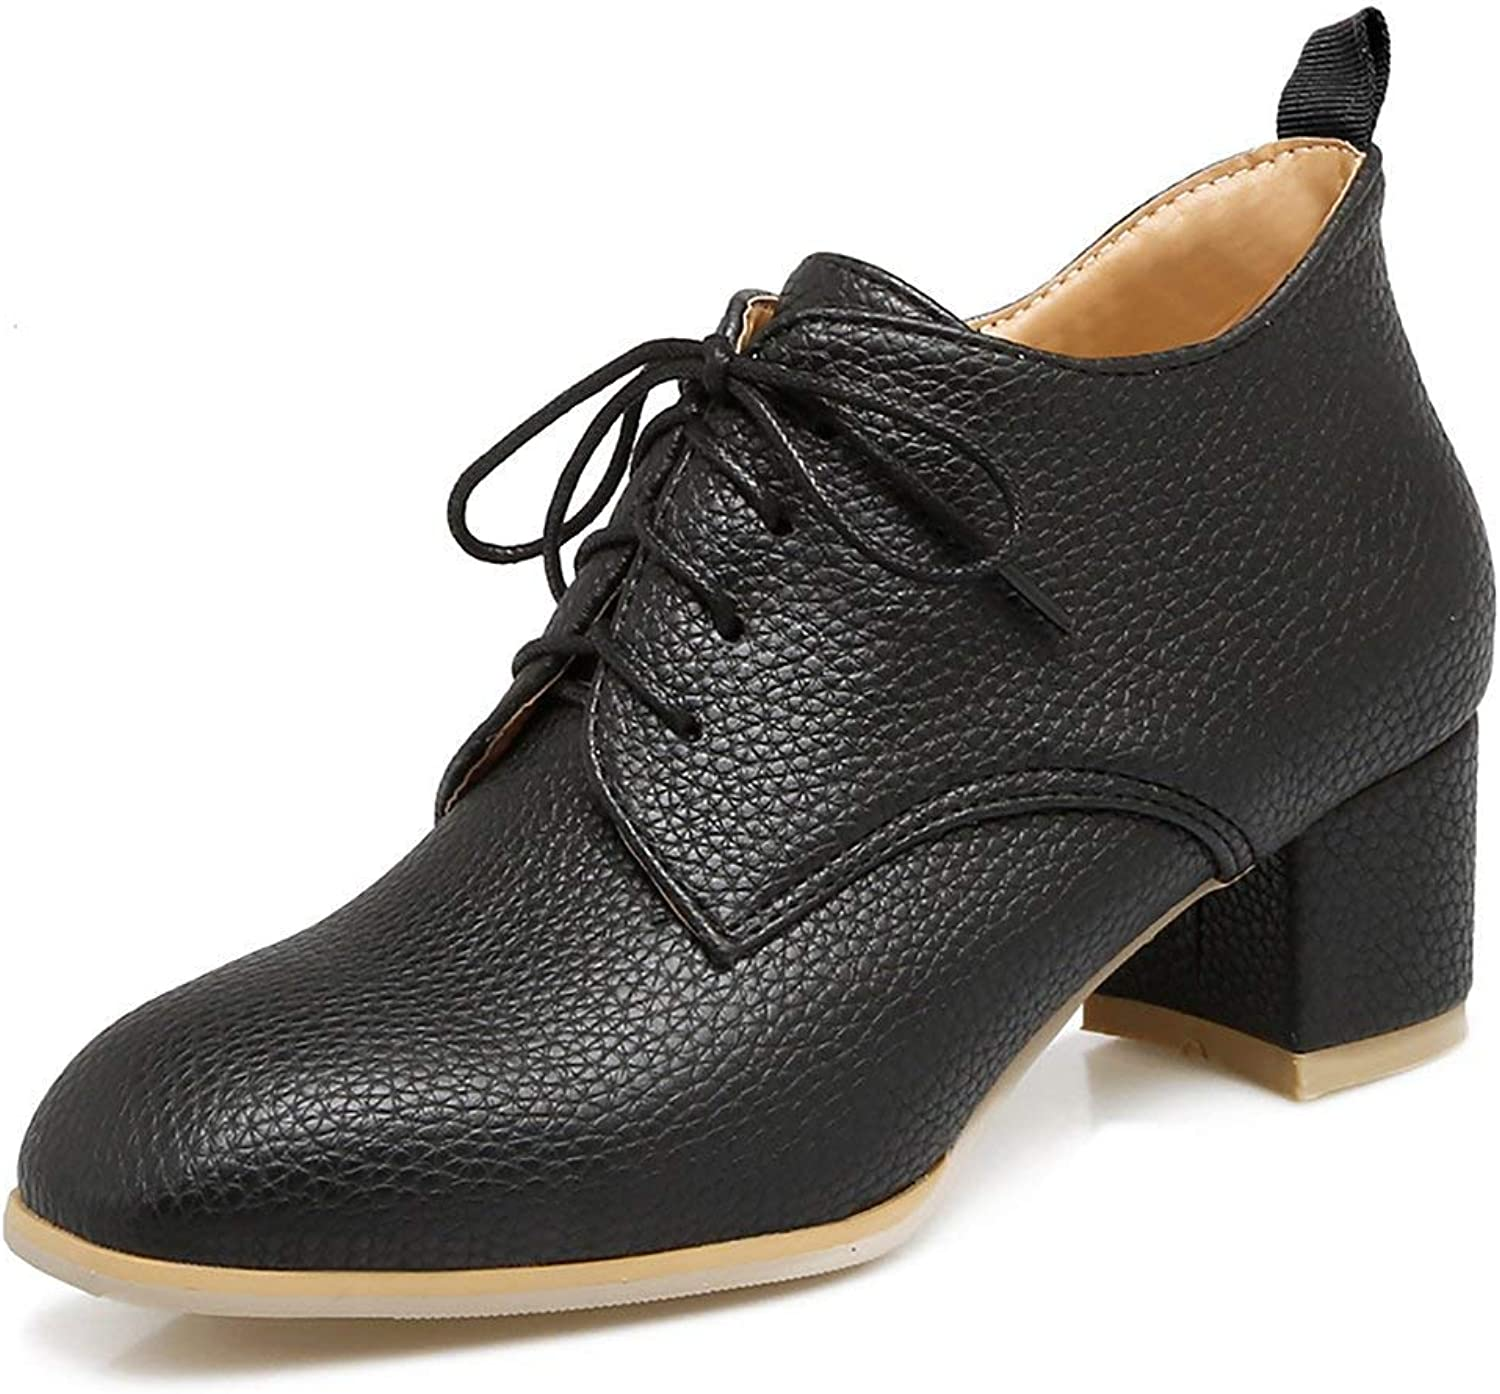 KAOKAOO Oxford Heels shoes Women Fashion Vintage Solid Ankle Booties Lace up Dress shoes